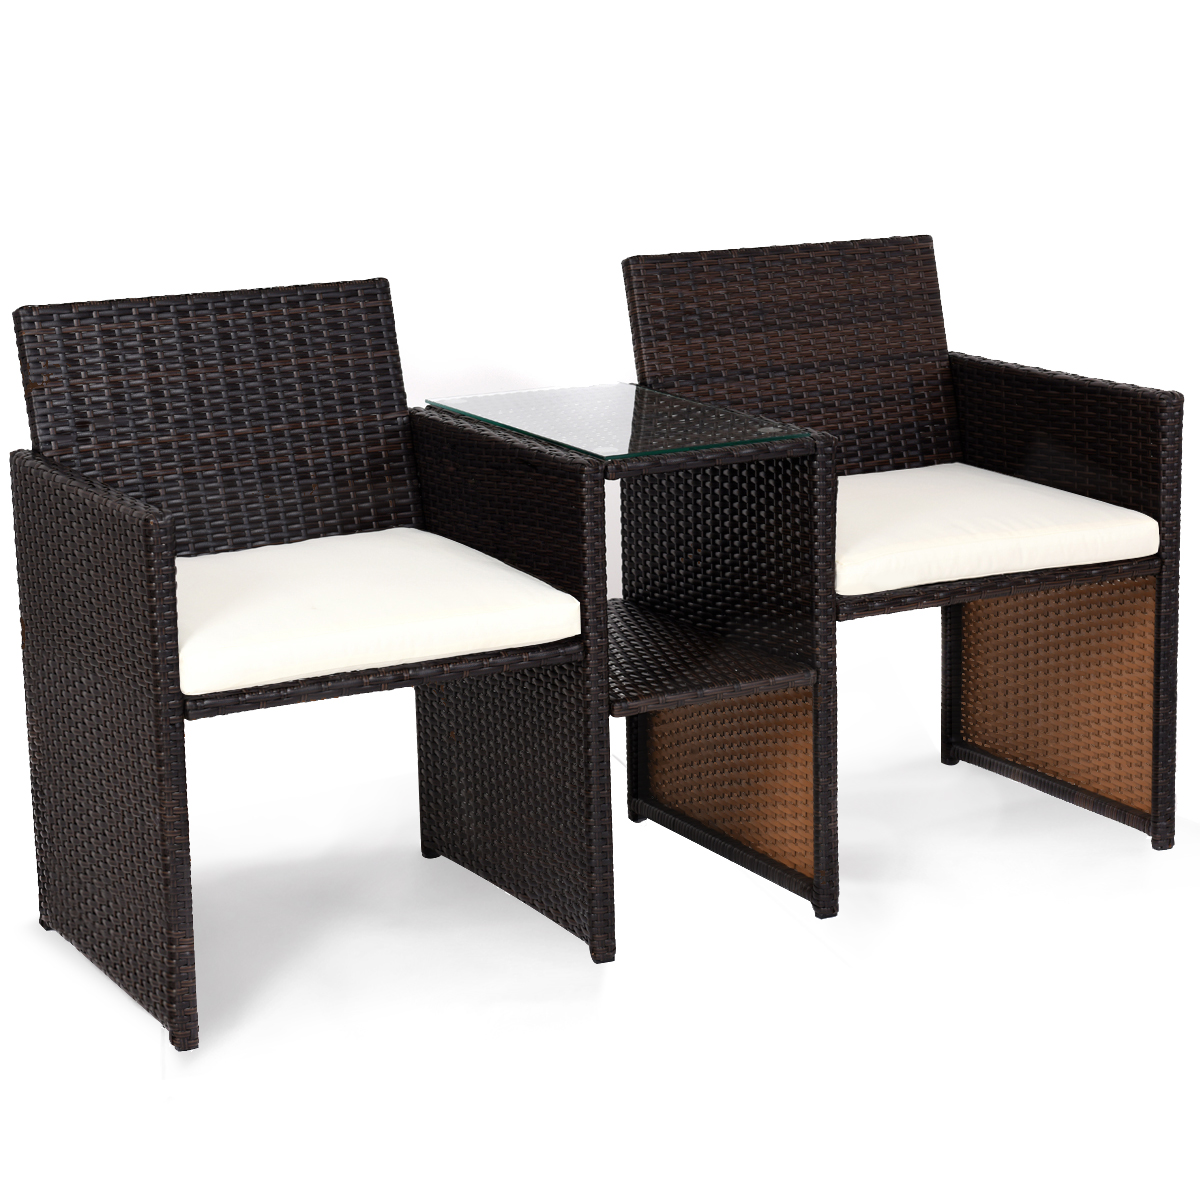 Gymax Cushioned Patio Rattan Seat Loveseat Sofa Table Chairs